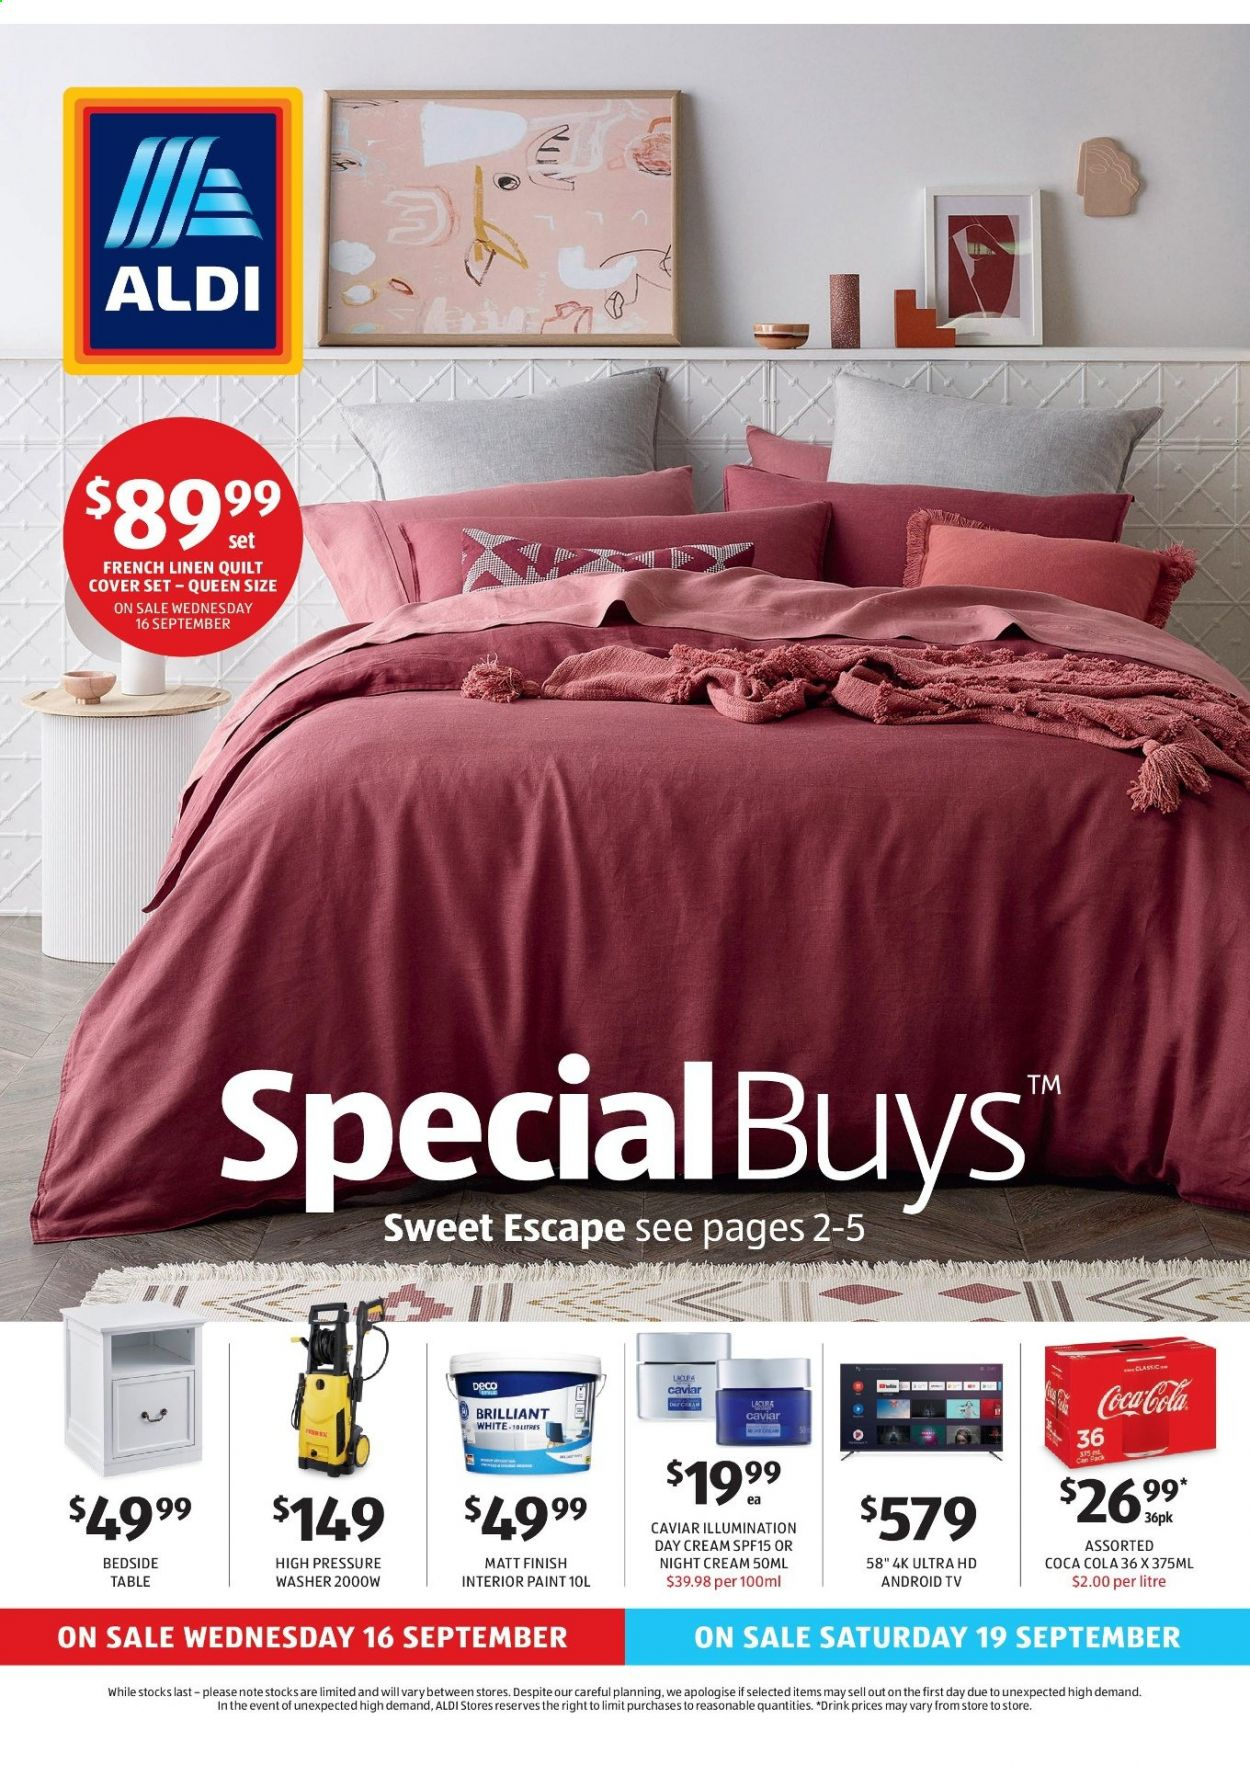 ALDI Catalogue - 16.9.2020 - 22.9.2020 - Sales products - android, android tv, caviar, day cream, table, uhd tv, ultra hd, washer, quilt, night cream, drink, paint. Page 1.